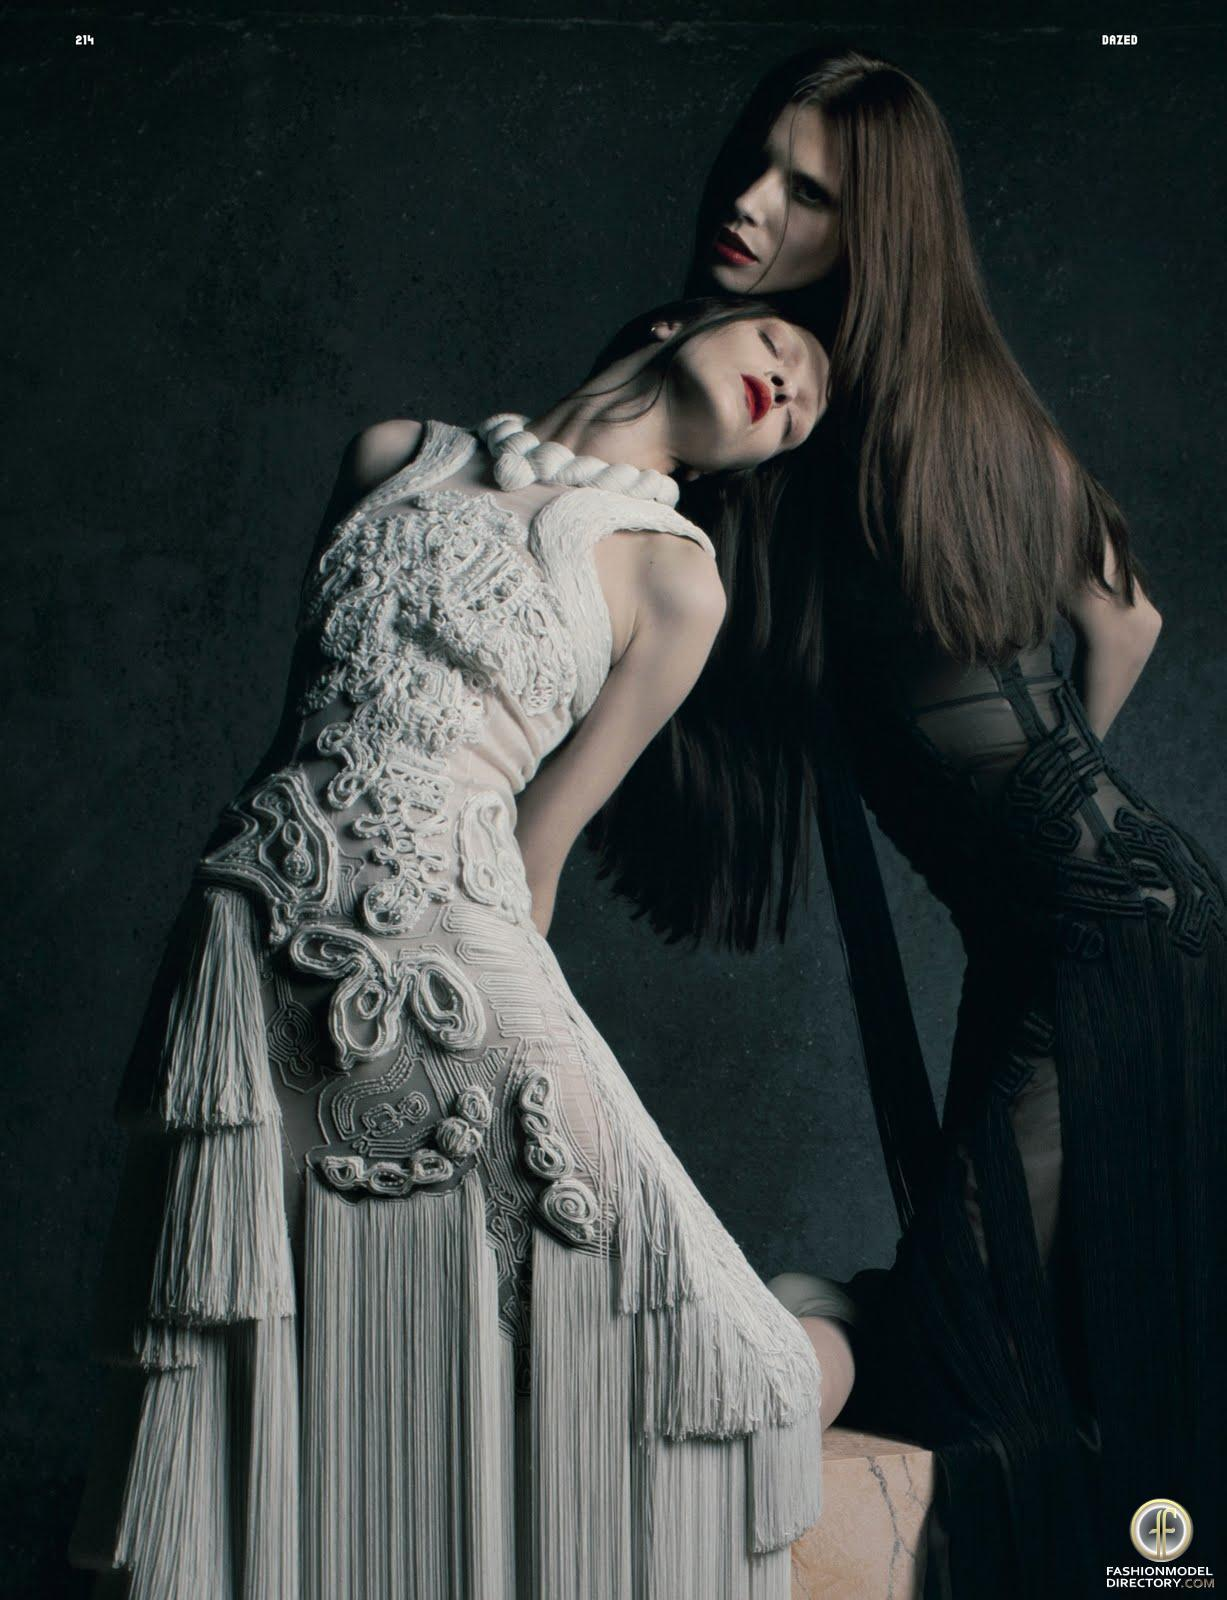 saloandseverine:  Dazed & Confused October 2011, Ex Stasis (Givenchy ed) Mariacarla Boscono & Lea Tisci by Matthew Stone